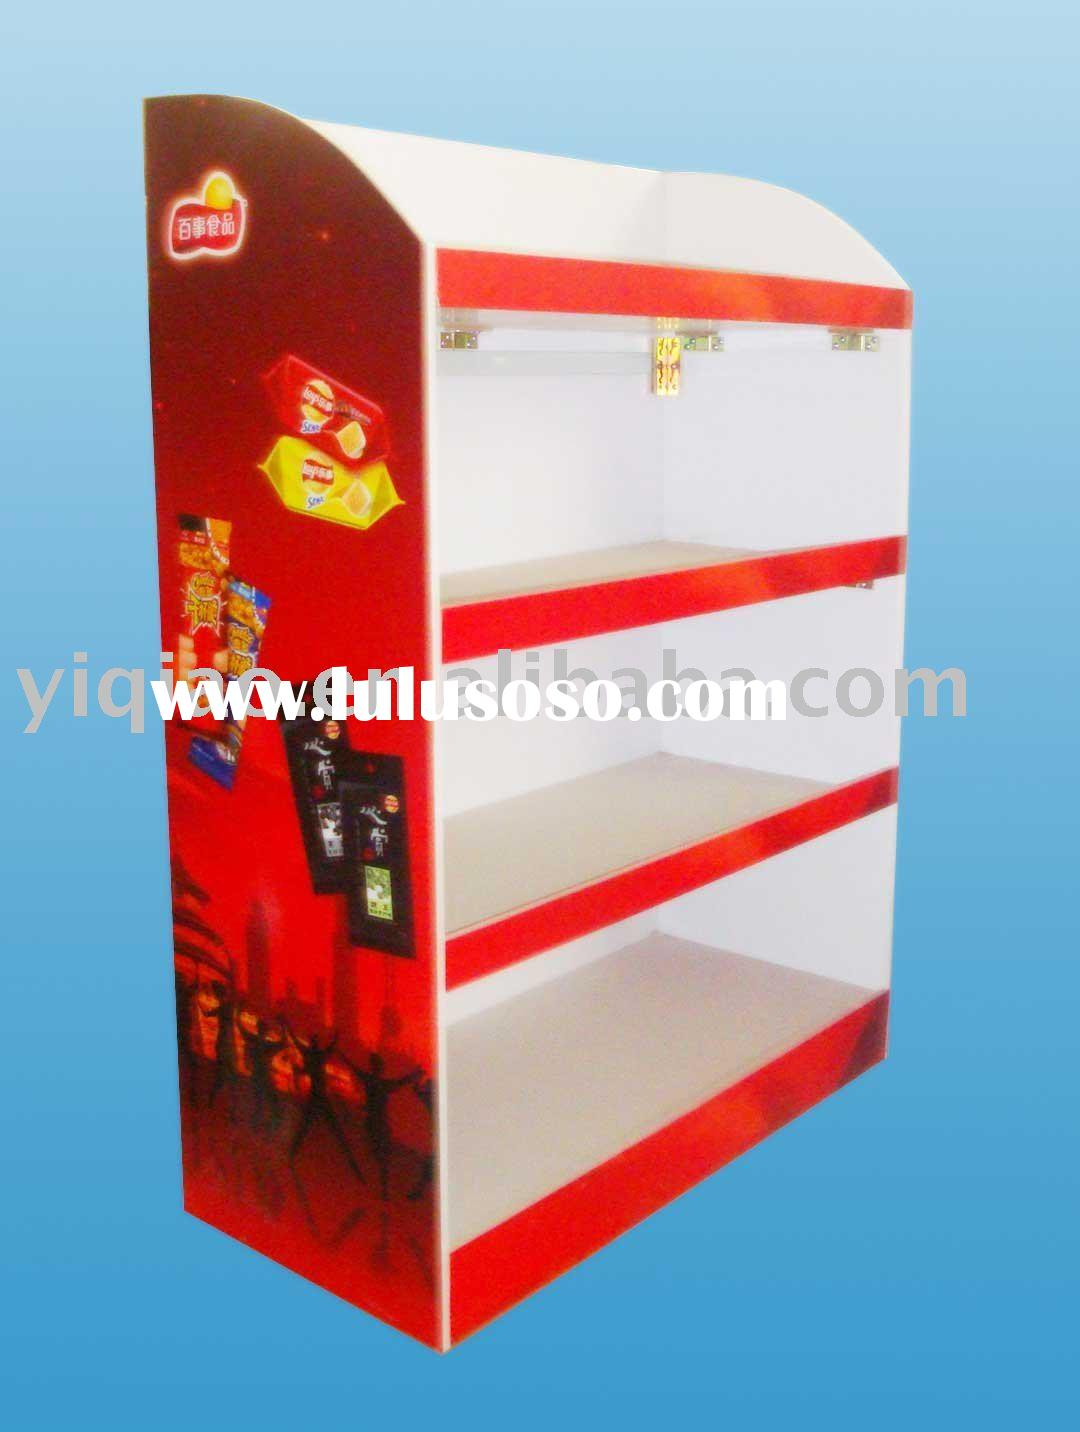 High quality and good price MDF wood display stand with 4 floors